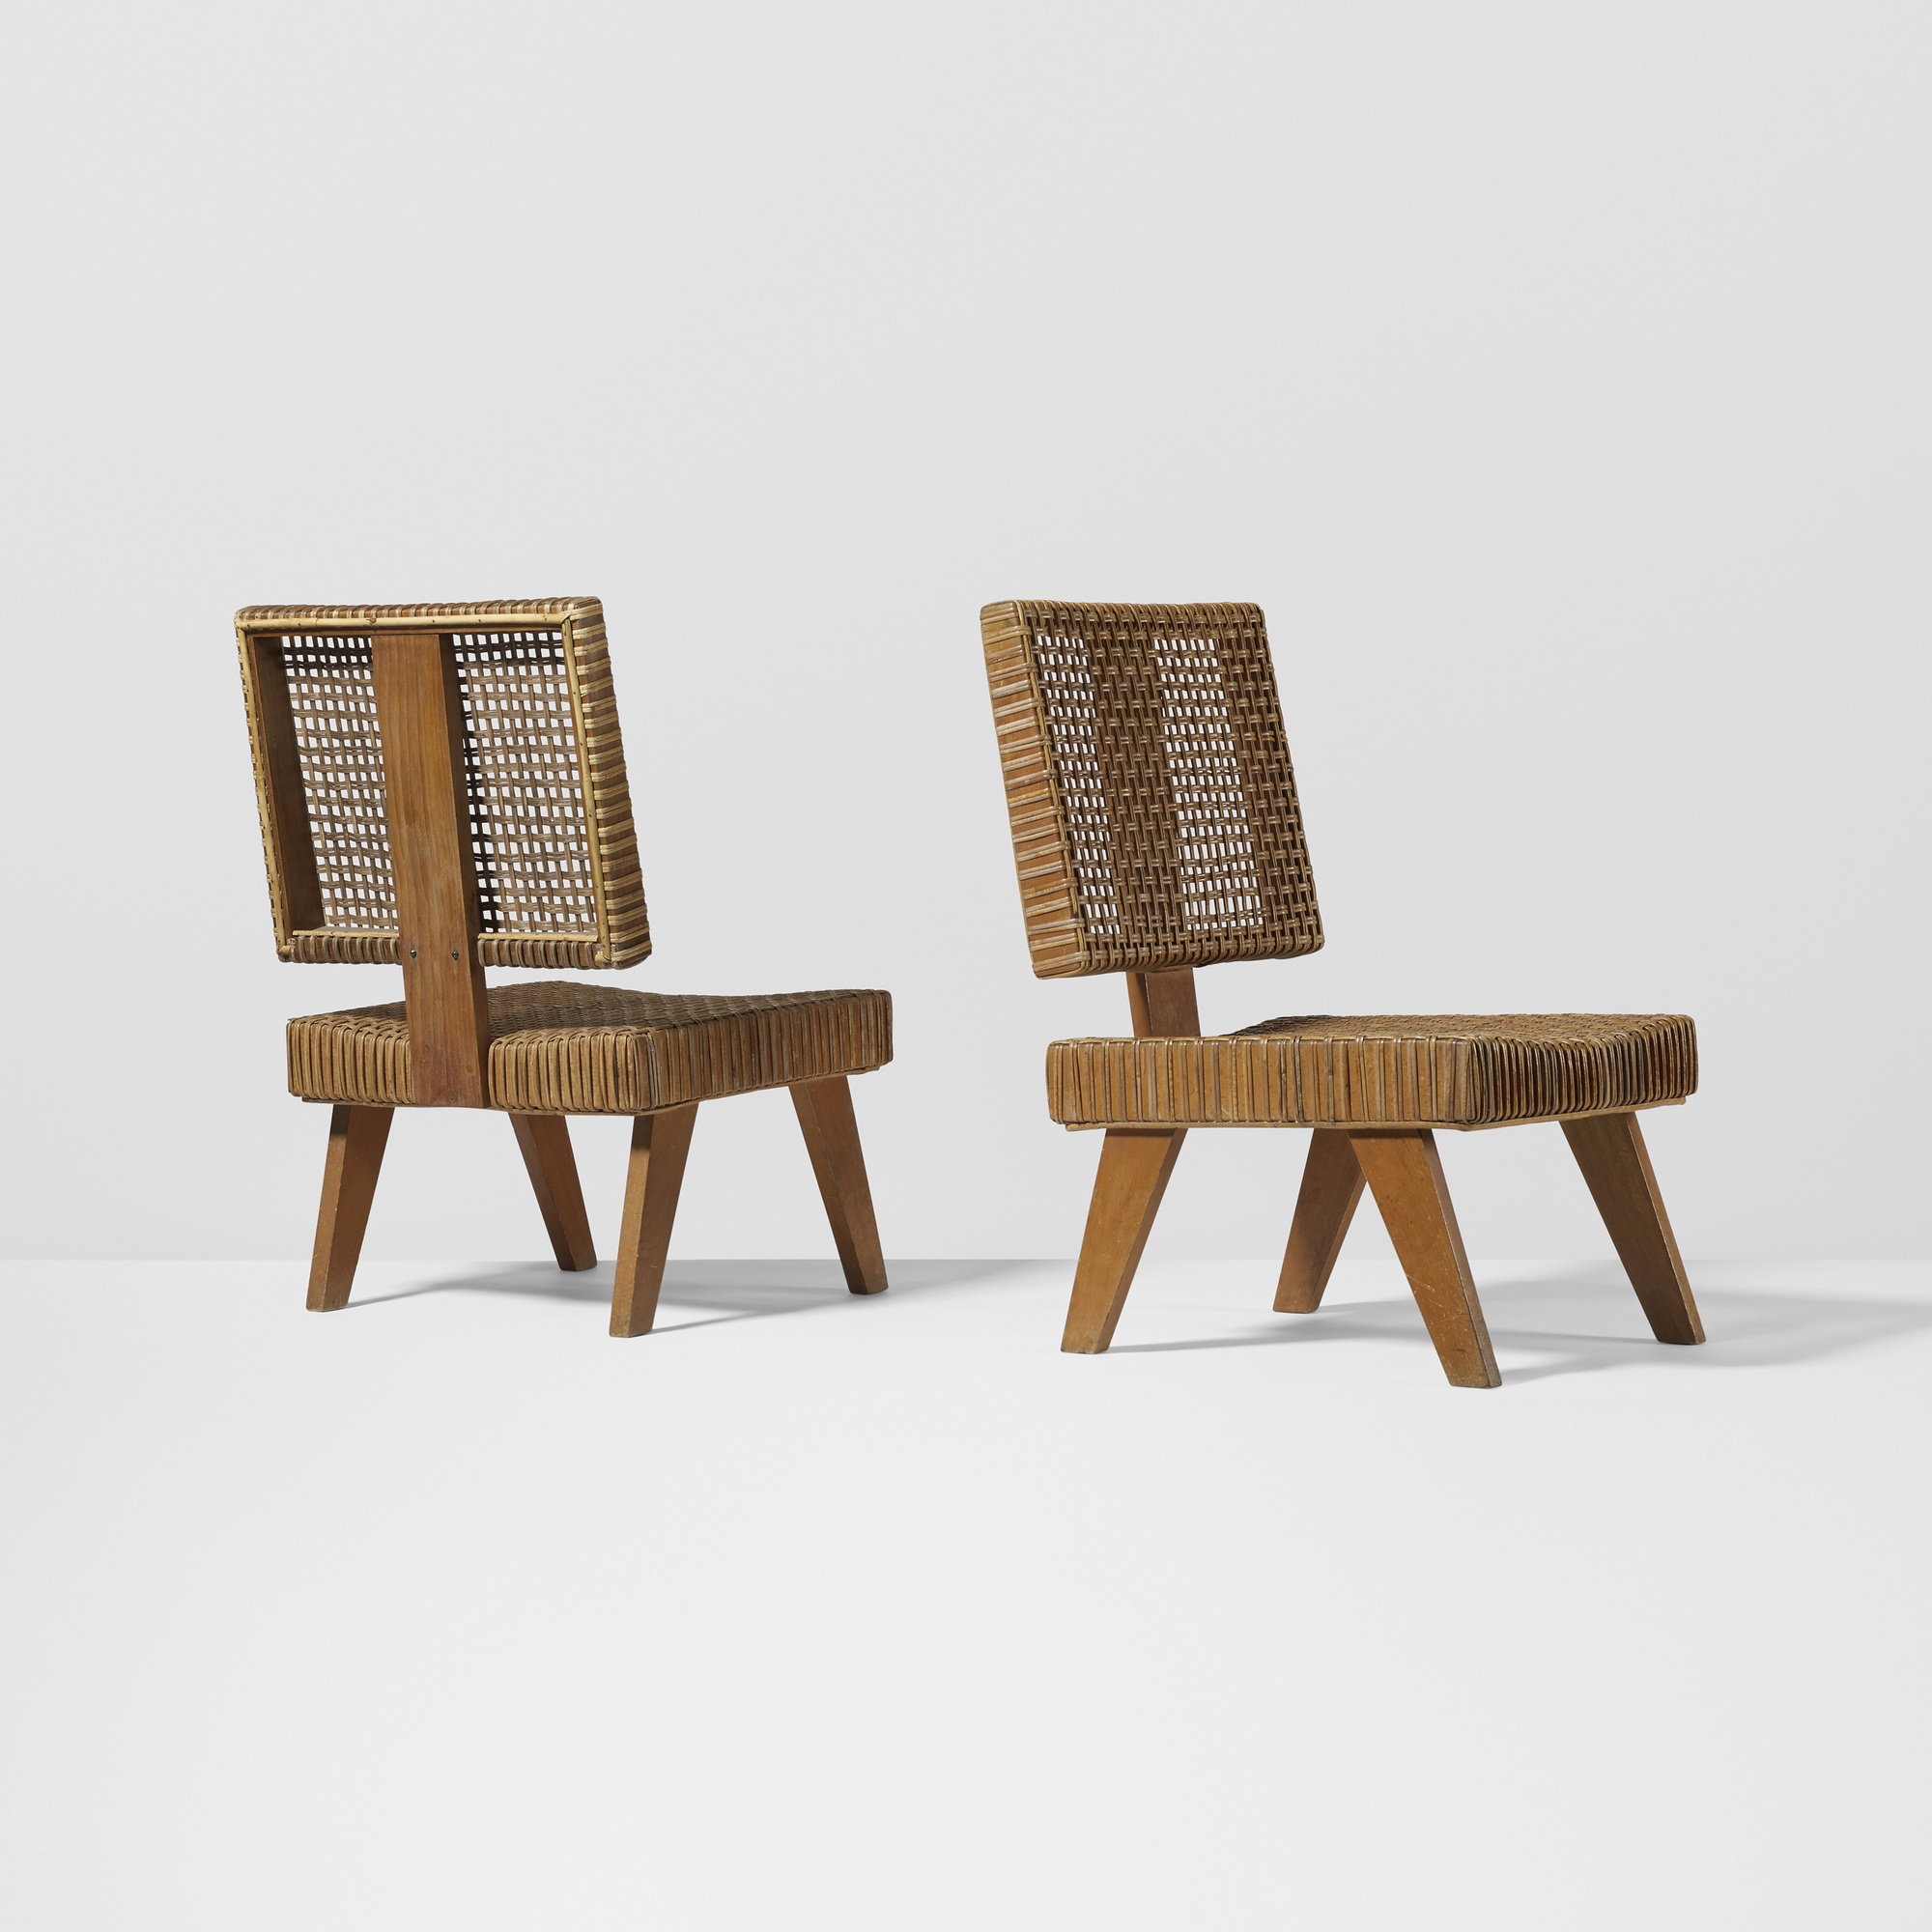 Le Corbusier Jeanneret 29 October 2015 Auctions Wright